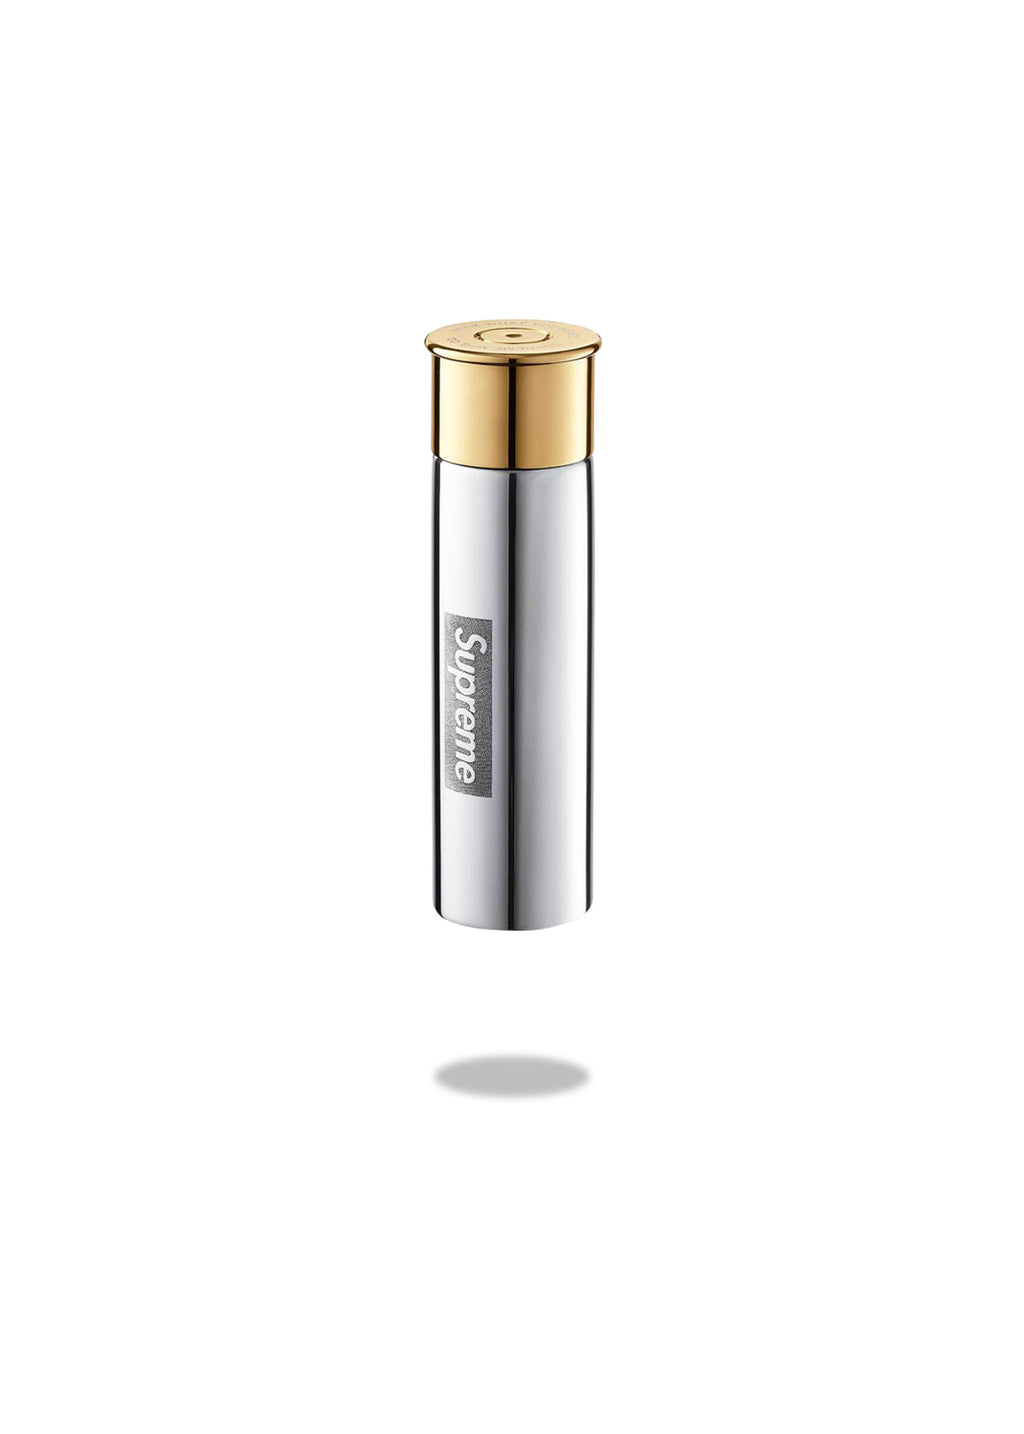 Supreme Cartridge Flask Metal